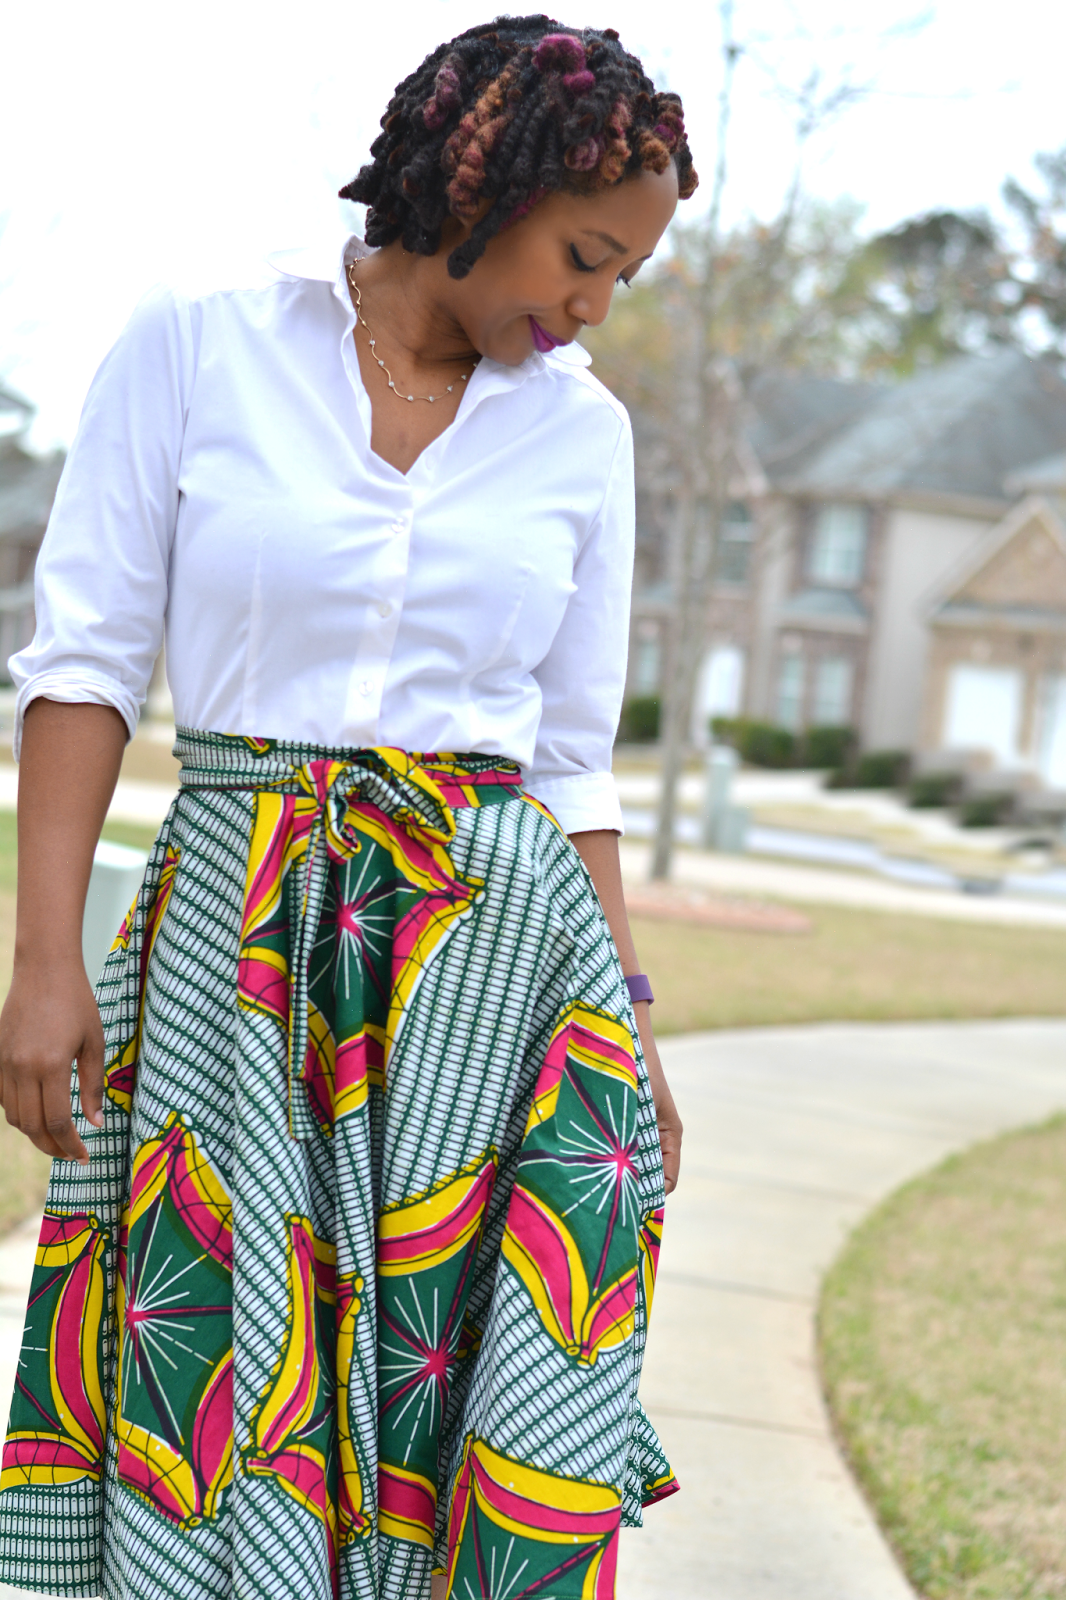 Diy african print skirt african print skirt fashion sewing and diy african print skirt made with mccalls 4875 very easy to sew full skirt pattern jeuxipadfo Images